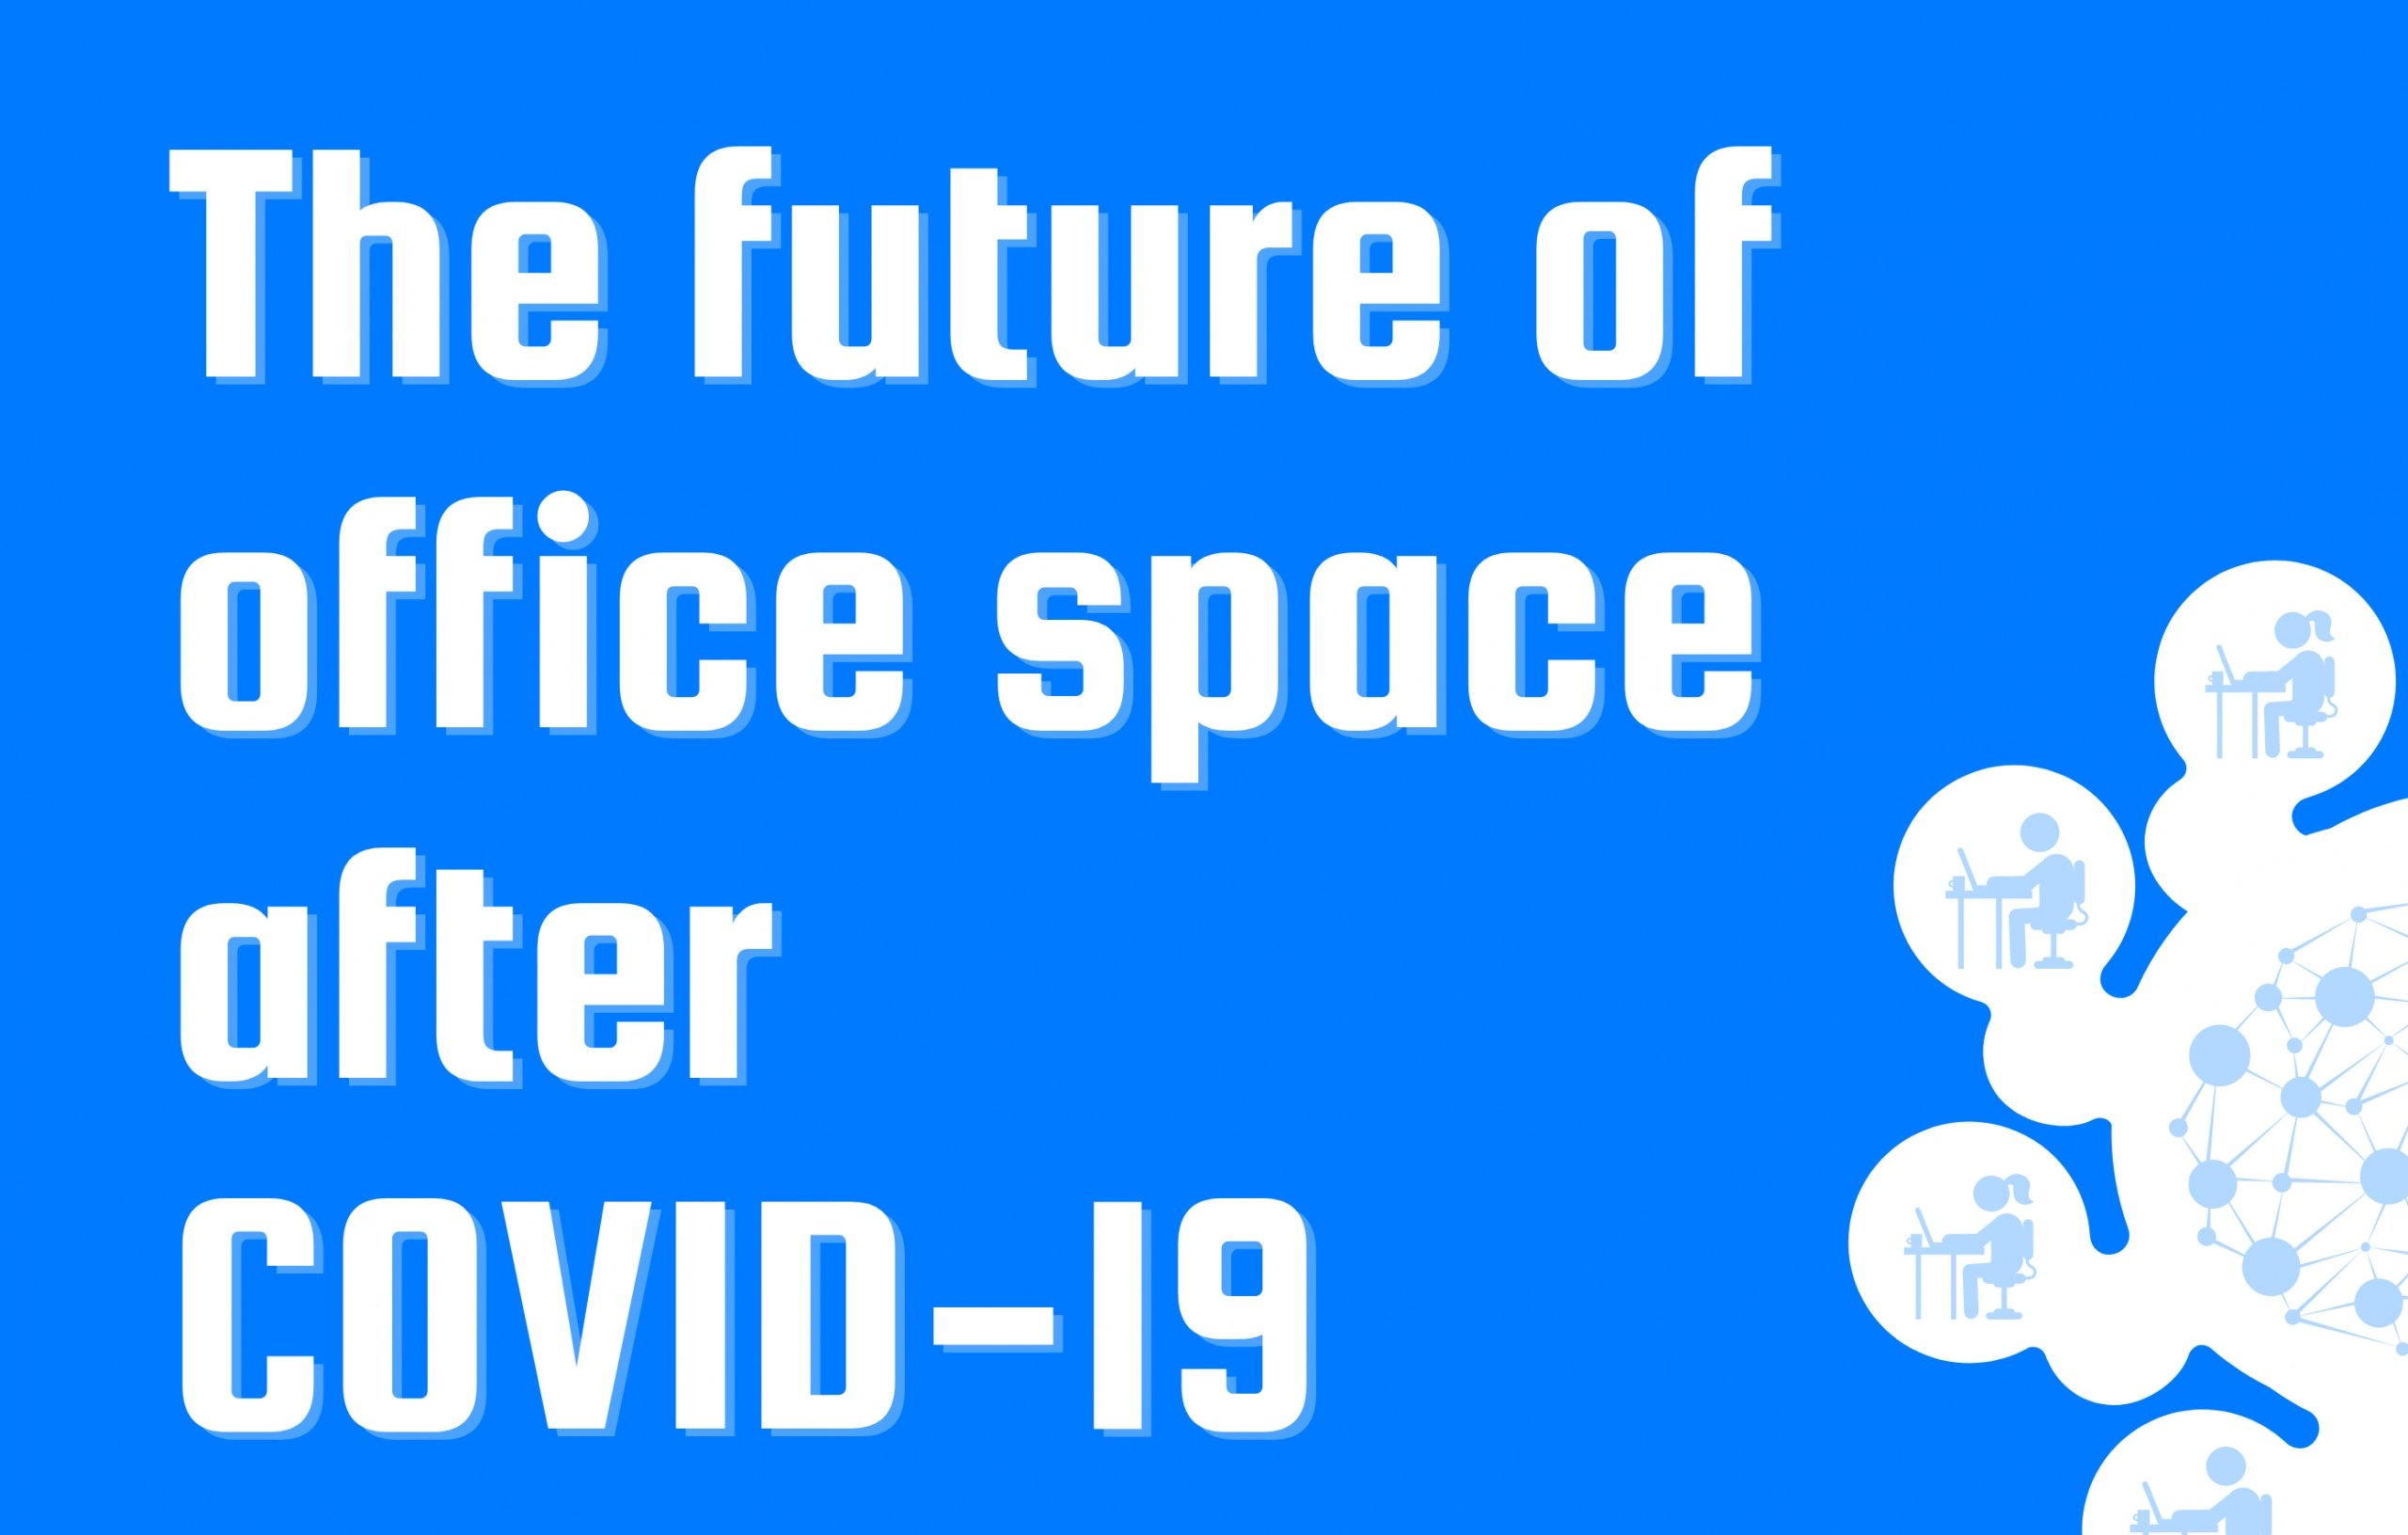 The future of office space post COVID-19 - Survey and Infographic